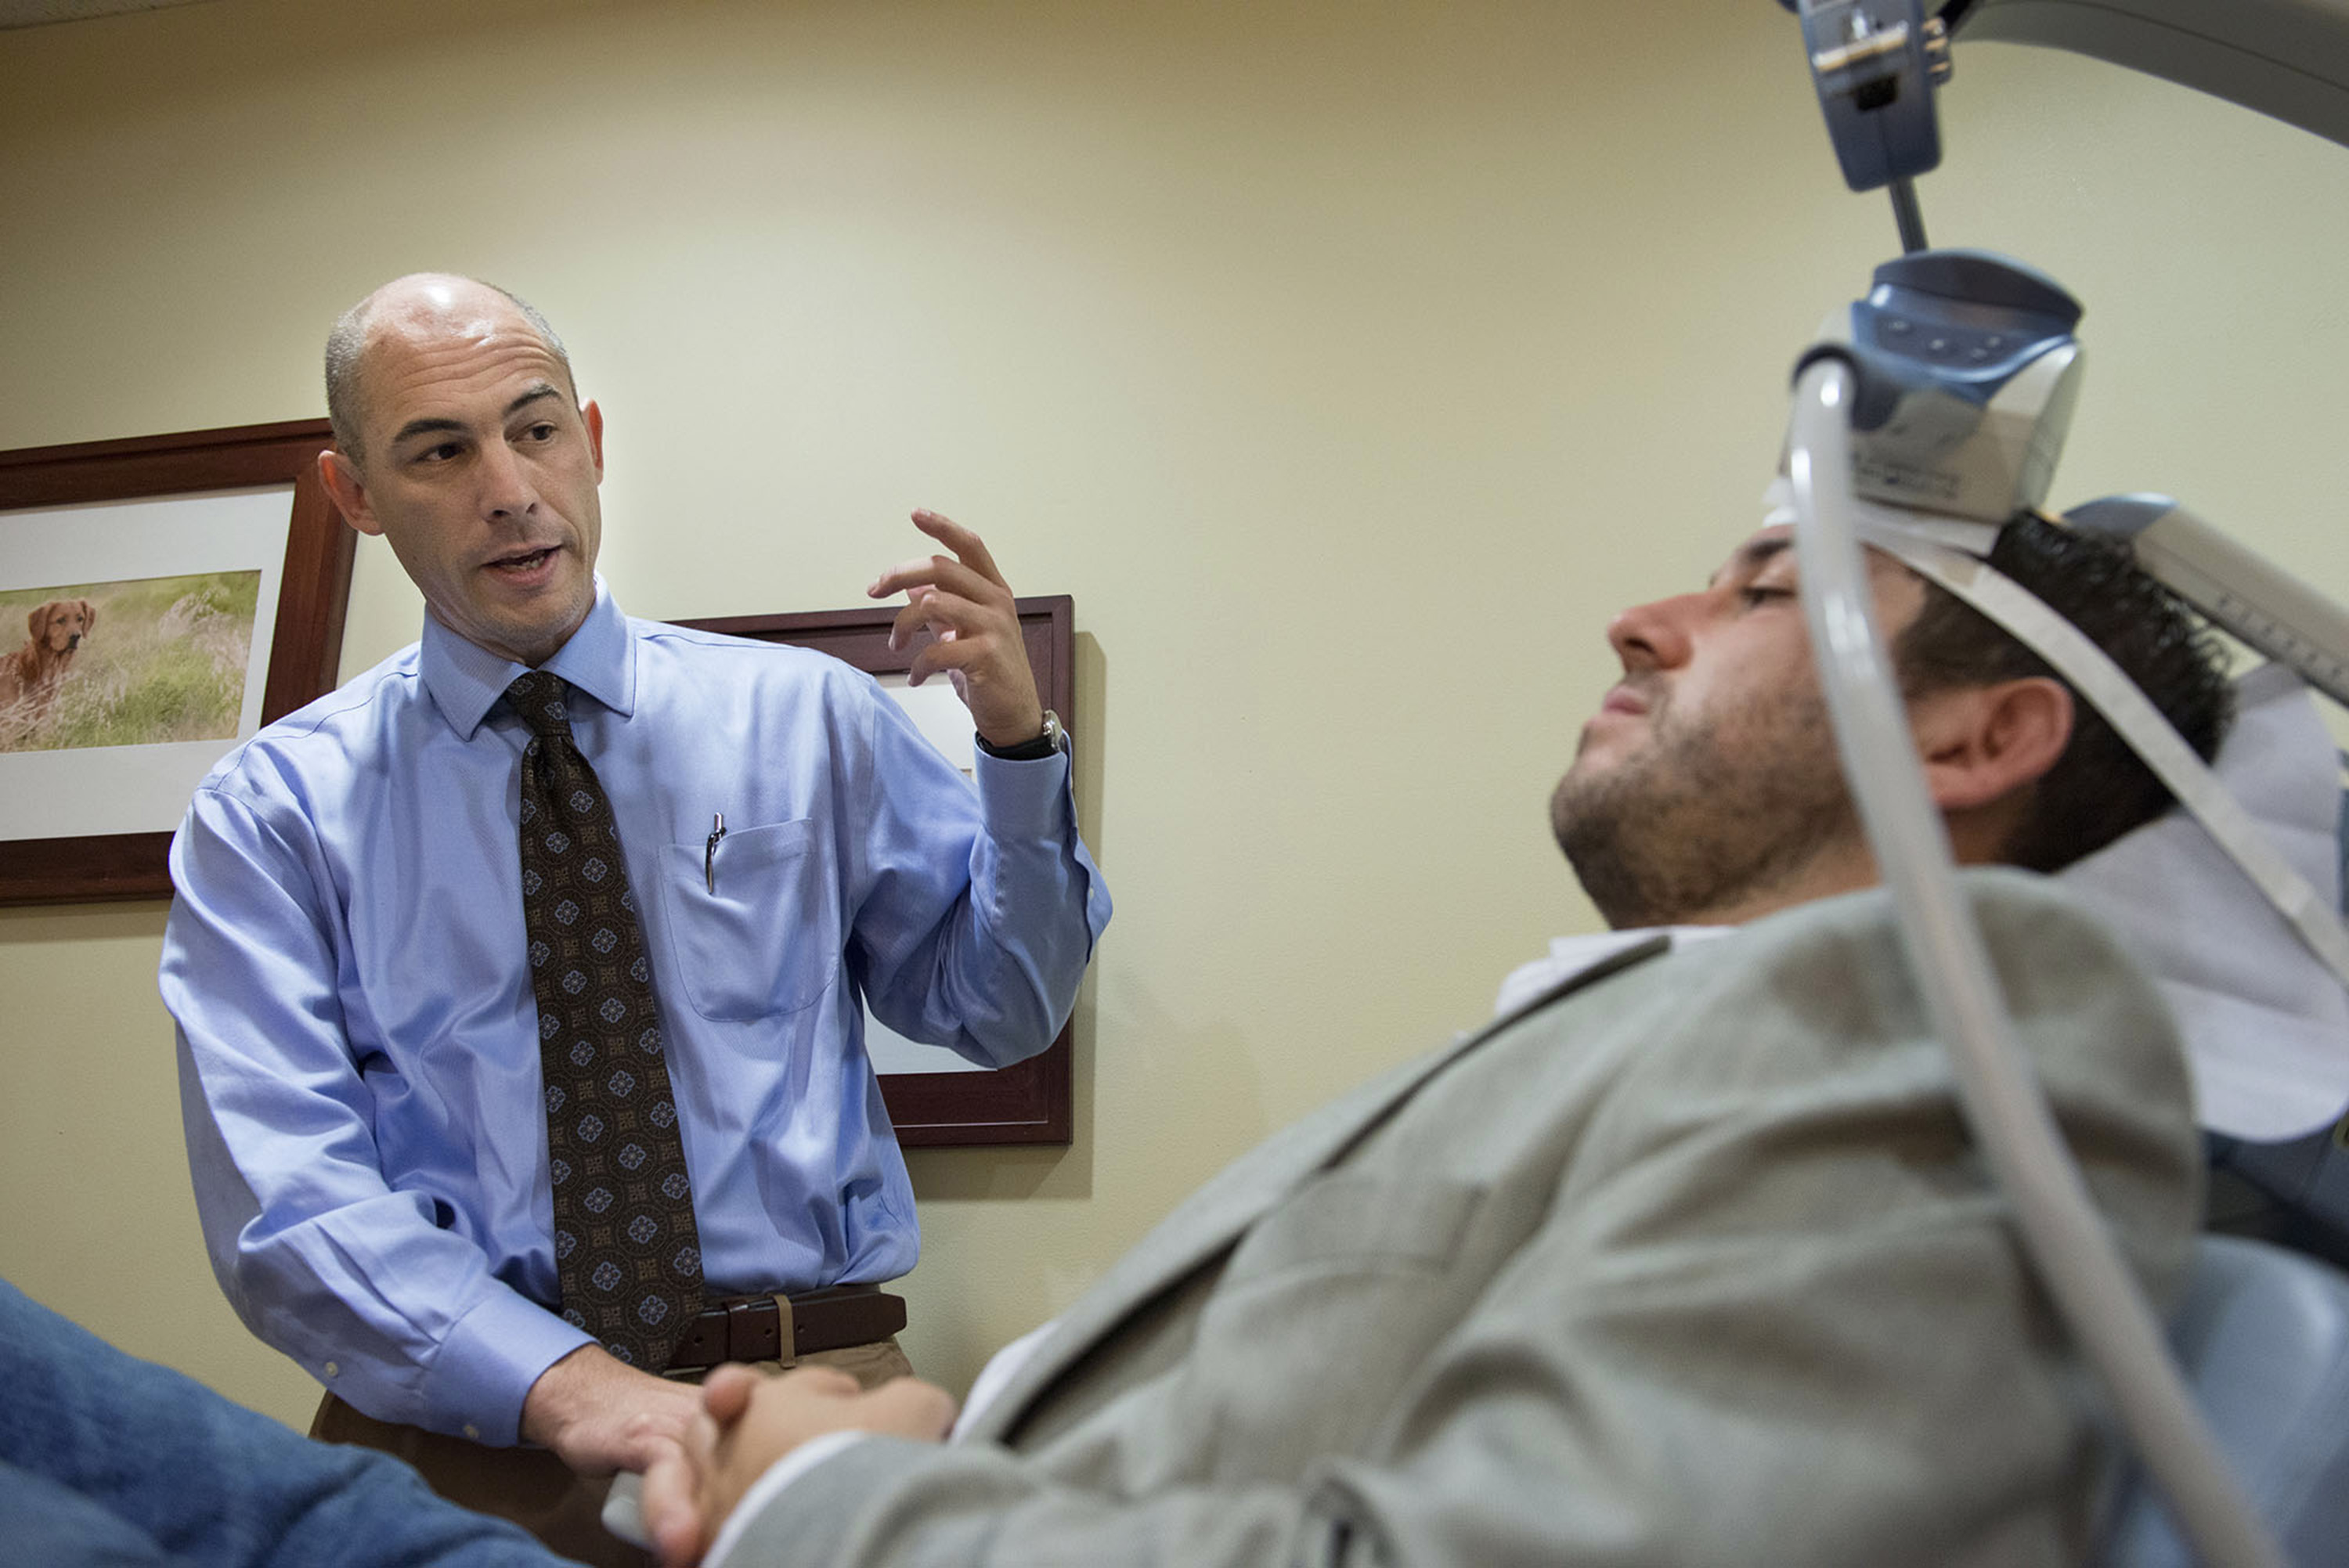 Dr. Richard Bermudes talks to his patient, 31-year-old Nicholas O'Madden, who suffers from anxiety and depression and receives treatment with Transcranial Magnetic Stimulation (TMS) therapy, which uses a large magnet to stimulate certain parts of the brain to alleviate depressive symptoms at TMS Health Solutions on July 2, 2015 in Sacramento, Calif. (Randy Pench/Sacramento Bee/TNS)